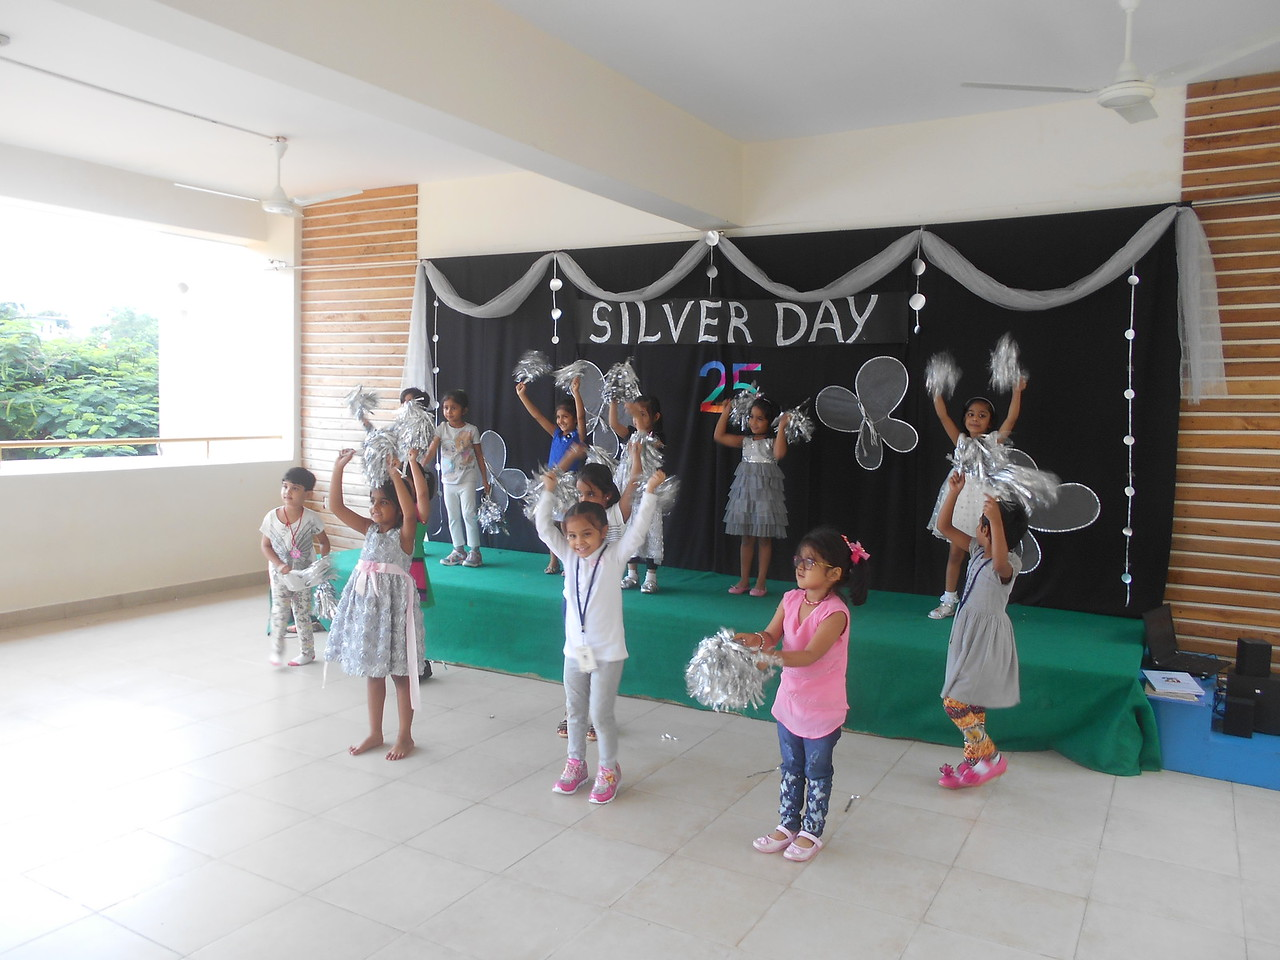 SILVER DAY 7